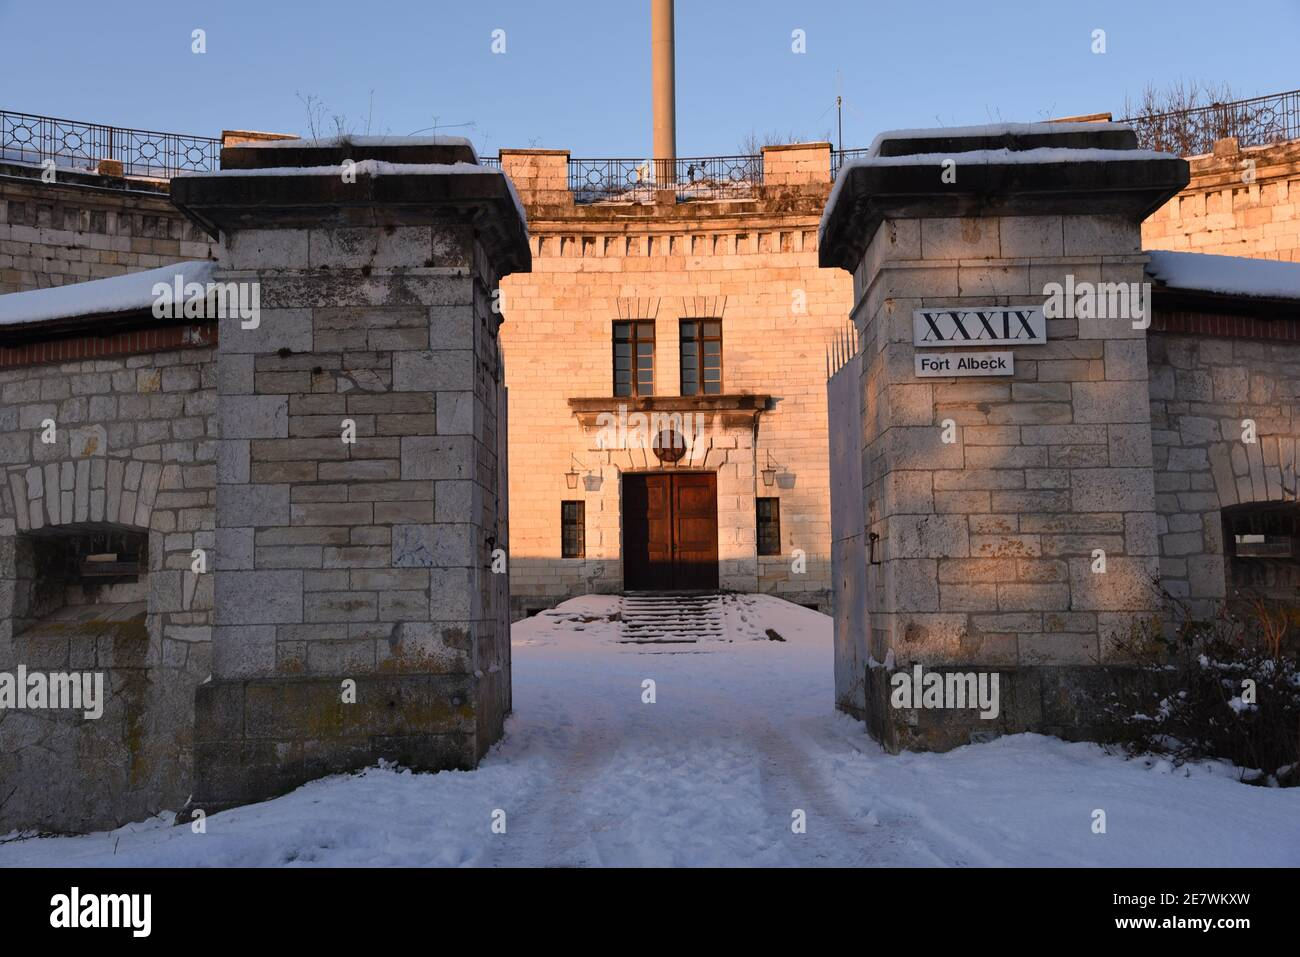 Fort Albeck during the golden hour surrounded by snow Stock Photo